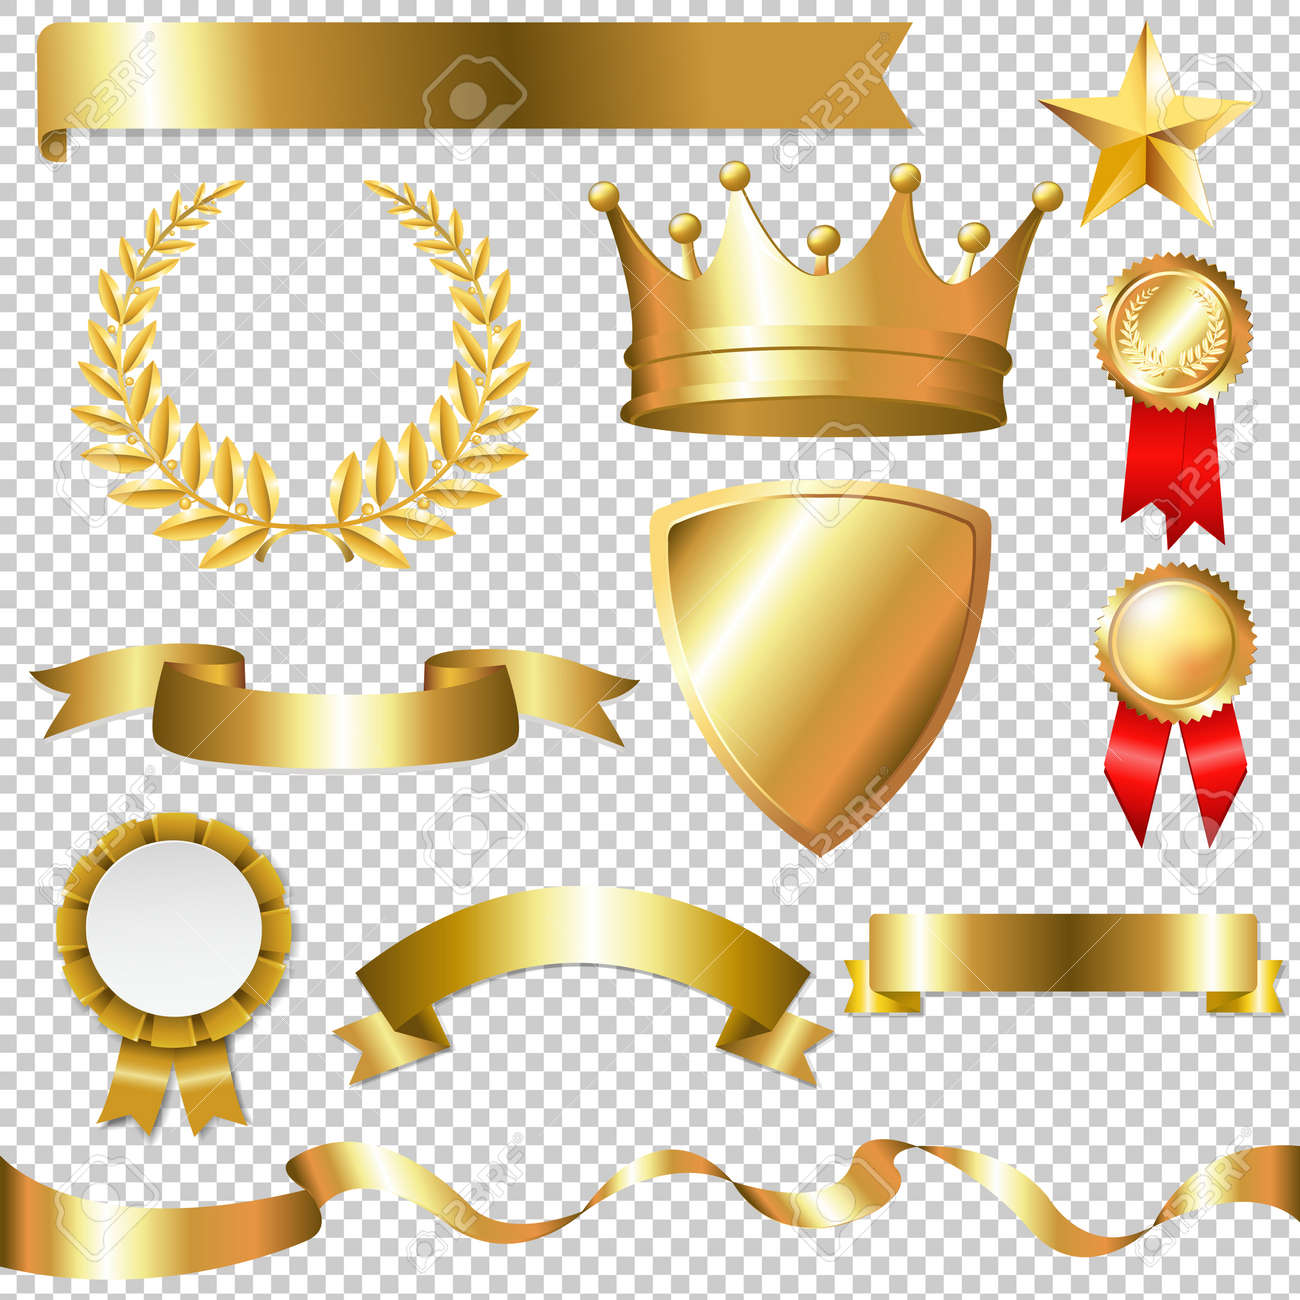 Golden Collection Isolated, Isolated on Transparent Background, With Gradient Mesh, Vector Illustration - 56871445